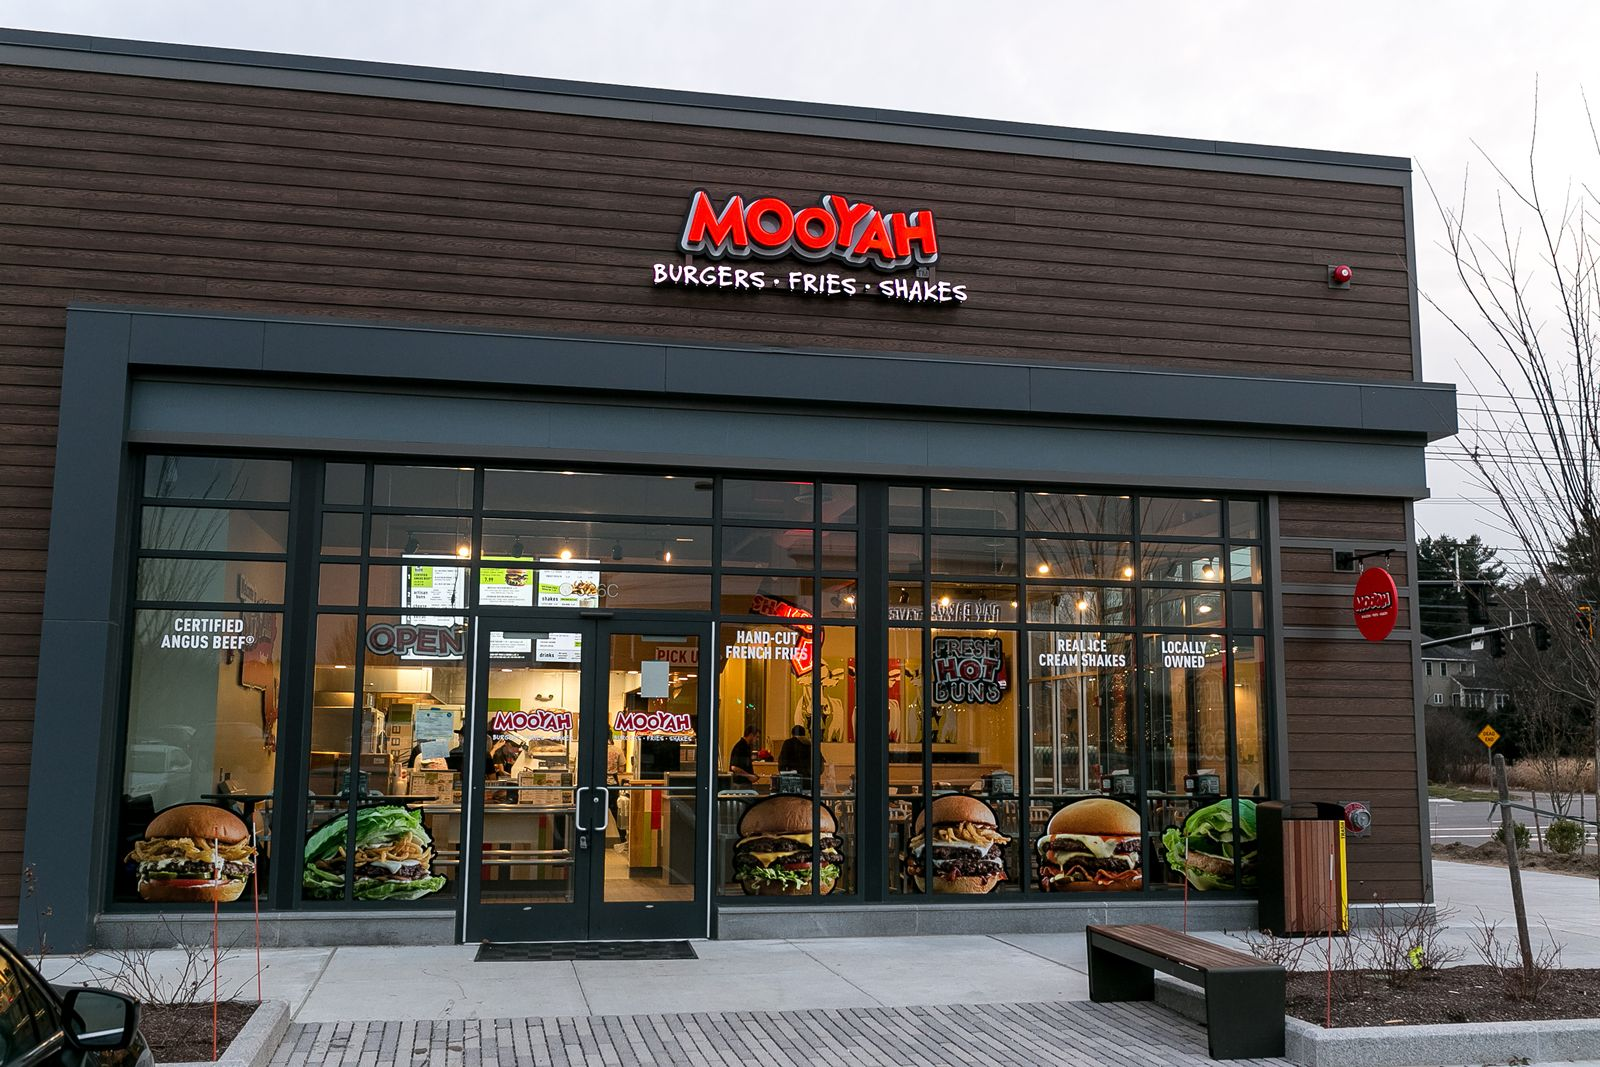 MOOYAH Burgers, Fries & Shakes Finds Success in Incentivizing Employees with Rewards Through Customer Reviews